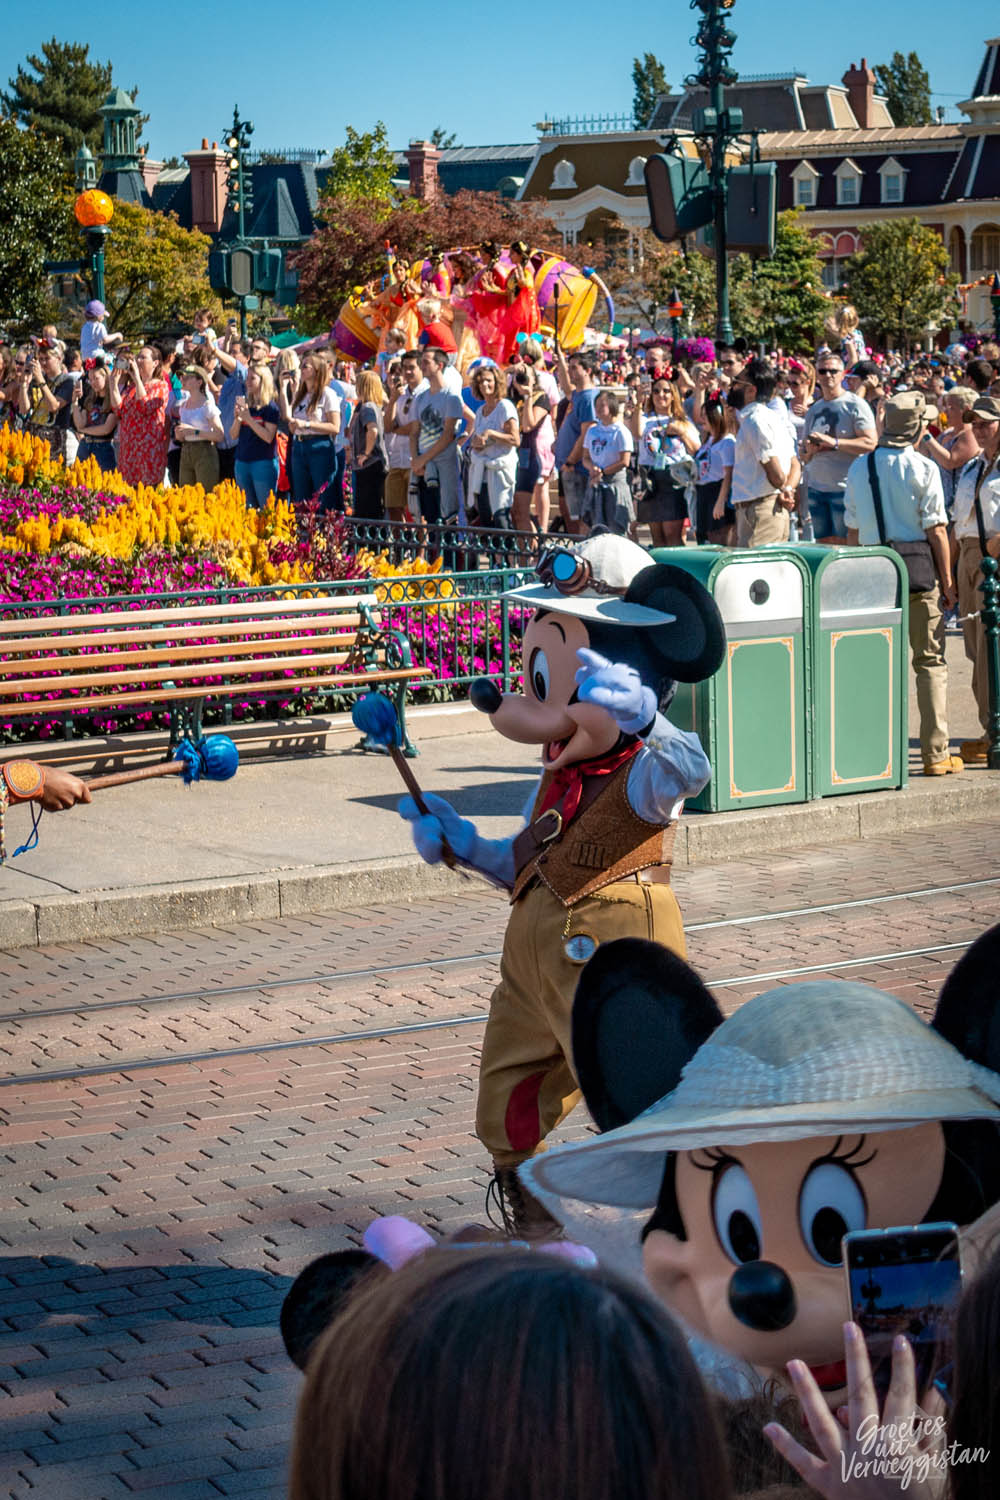 Mickey Mouse in jungle avonturen outfit tijdens The Jungle Book Jive in Disneyland Paris